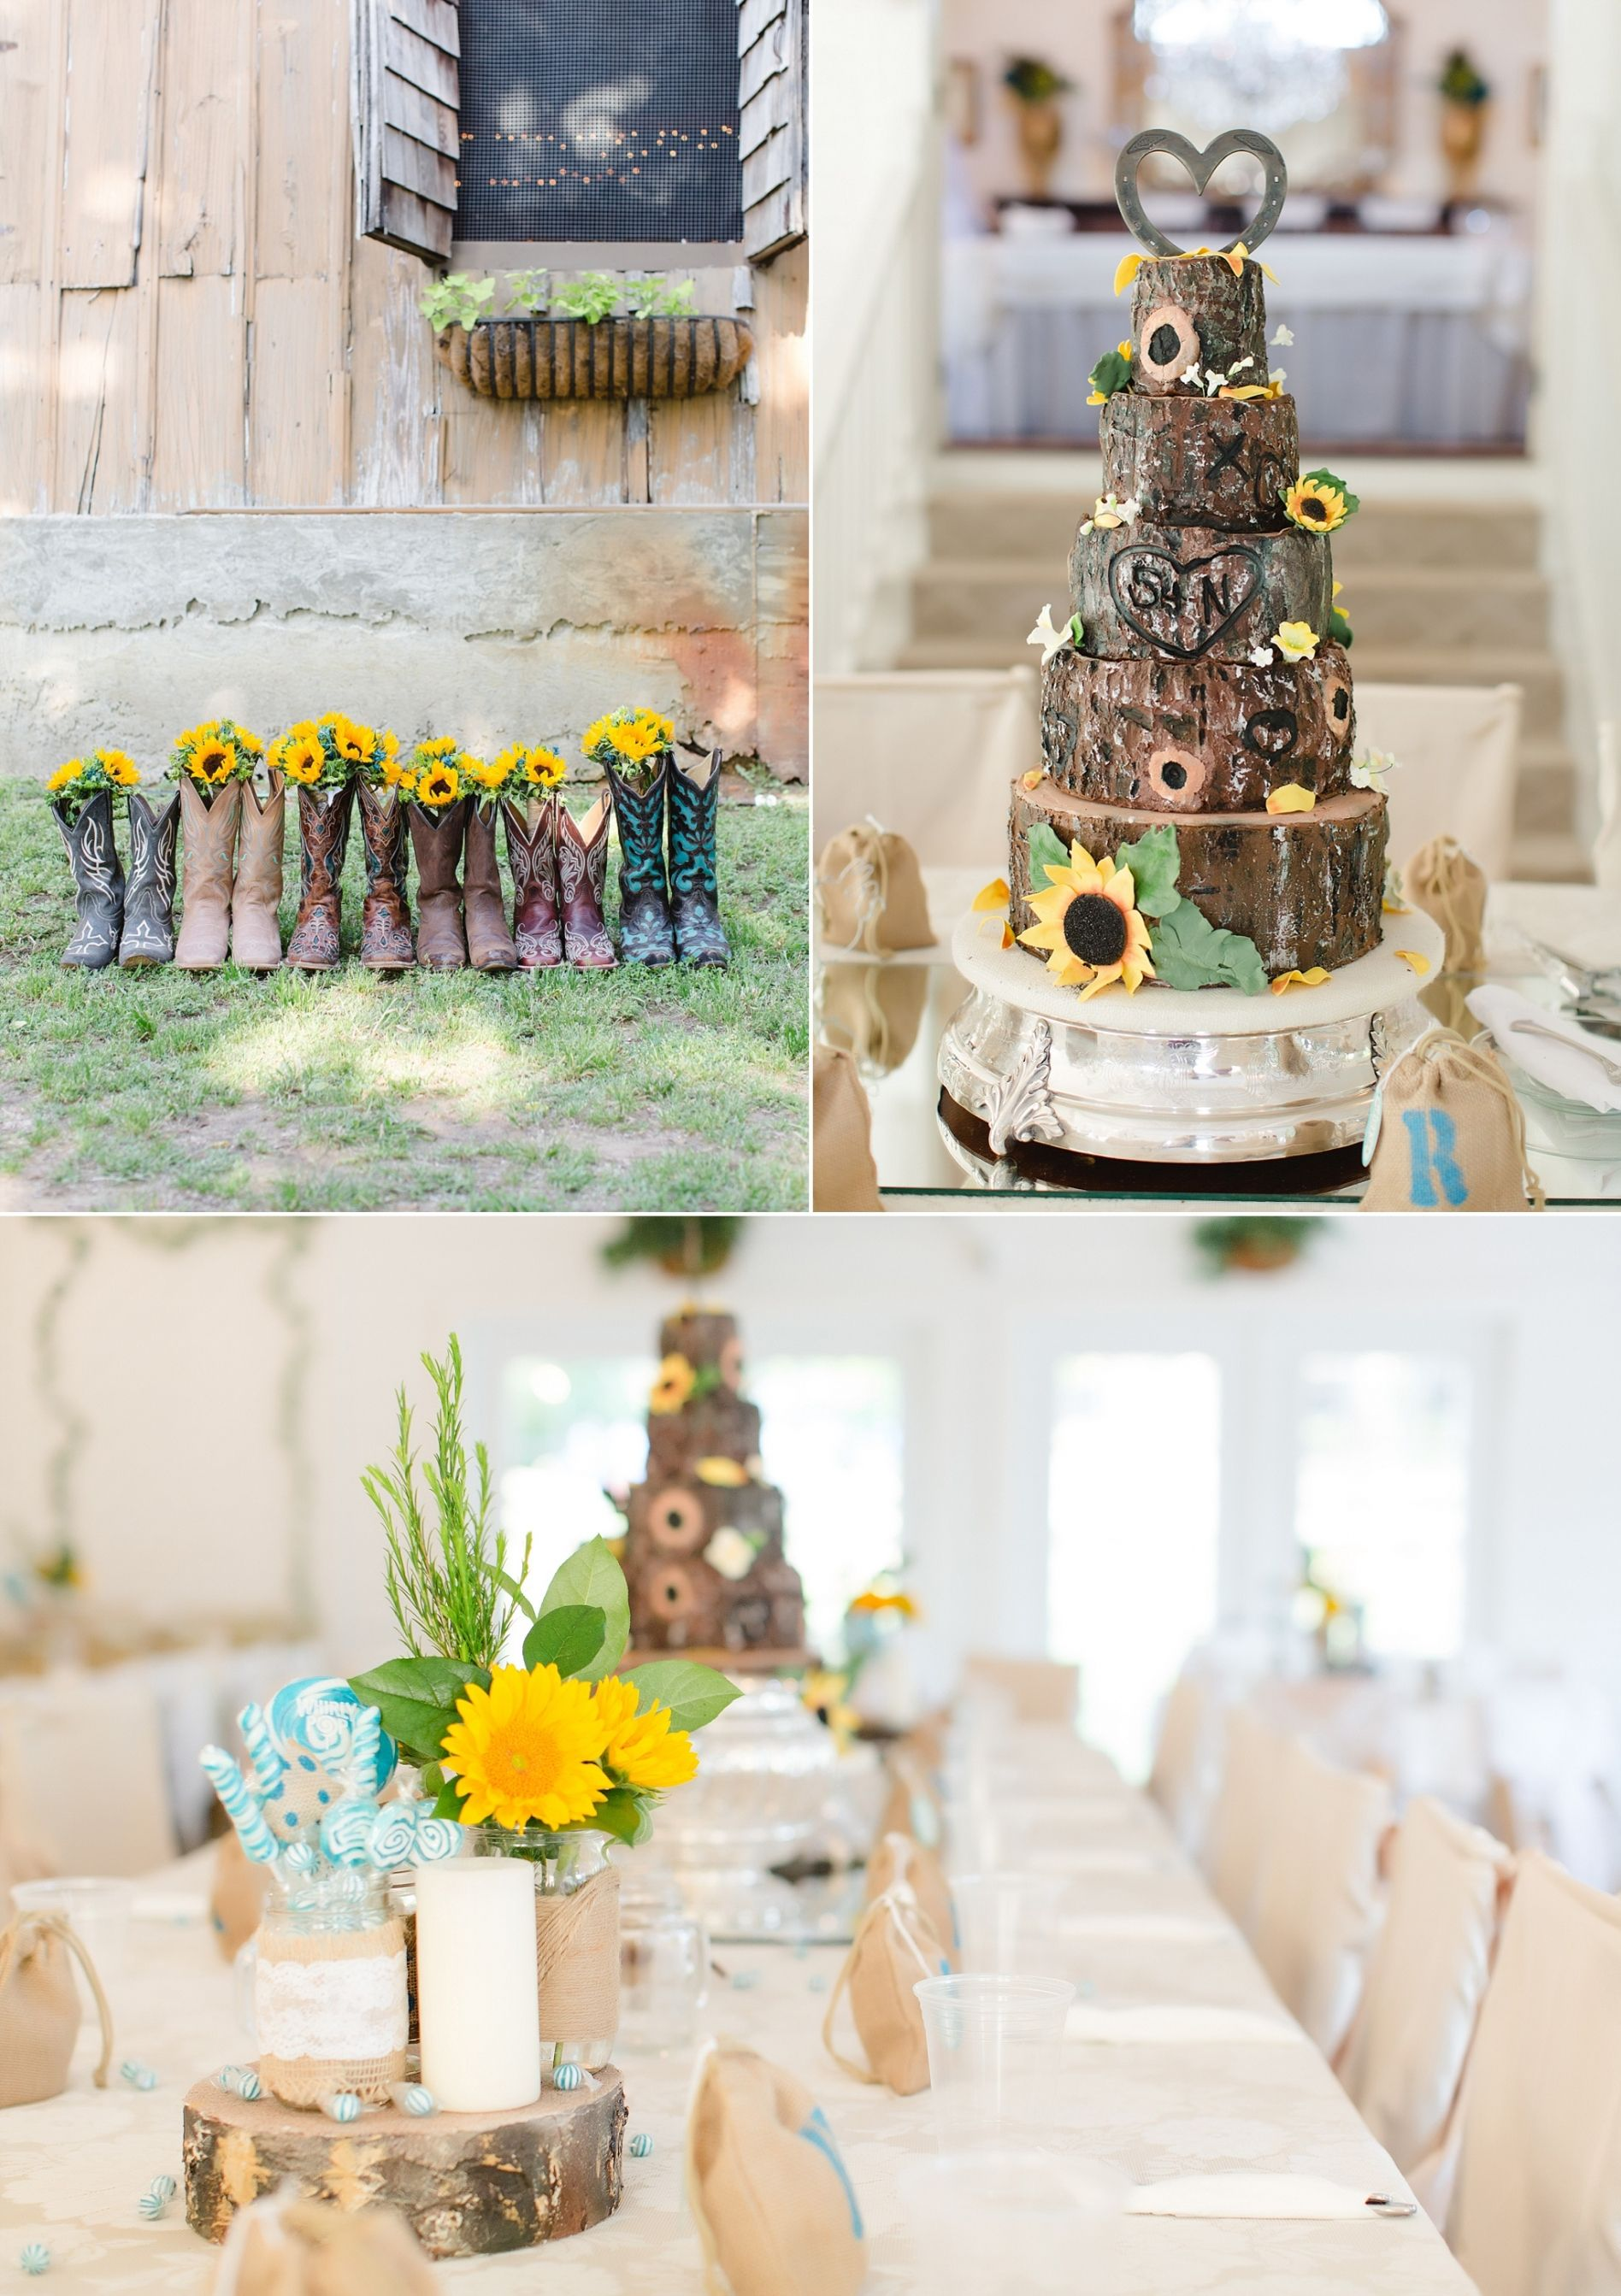 Rustic Weddings, Teal and yellow wedding. Rustic wedding cake ...